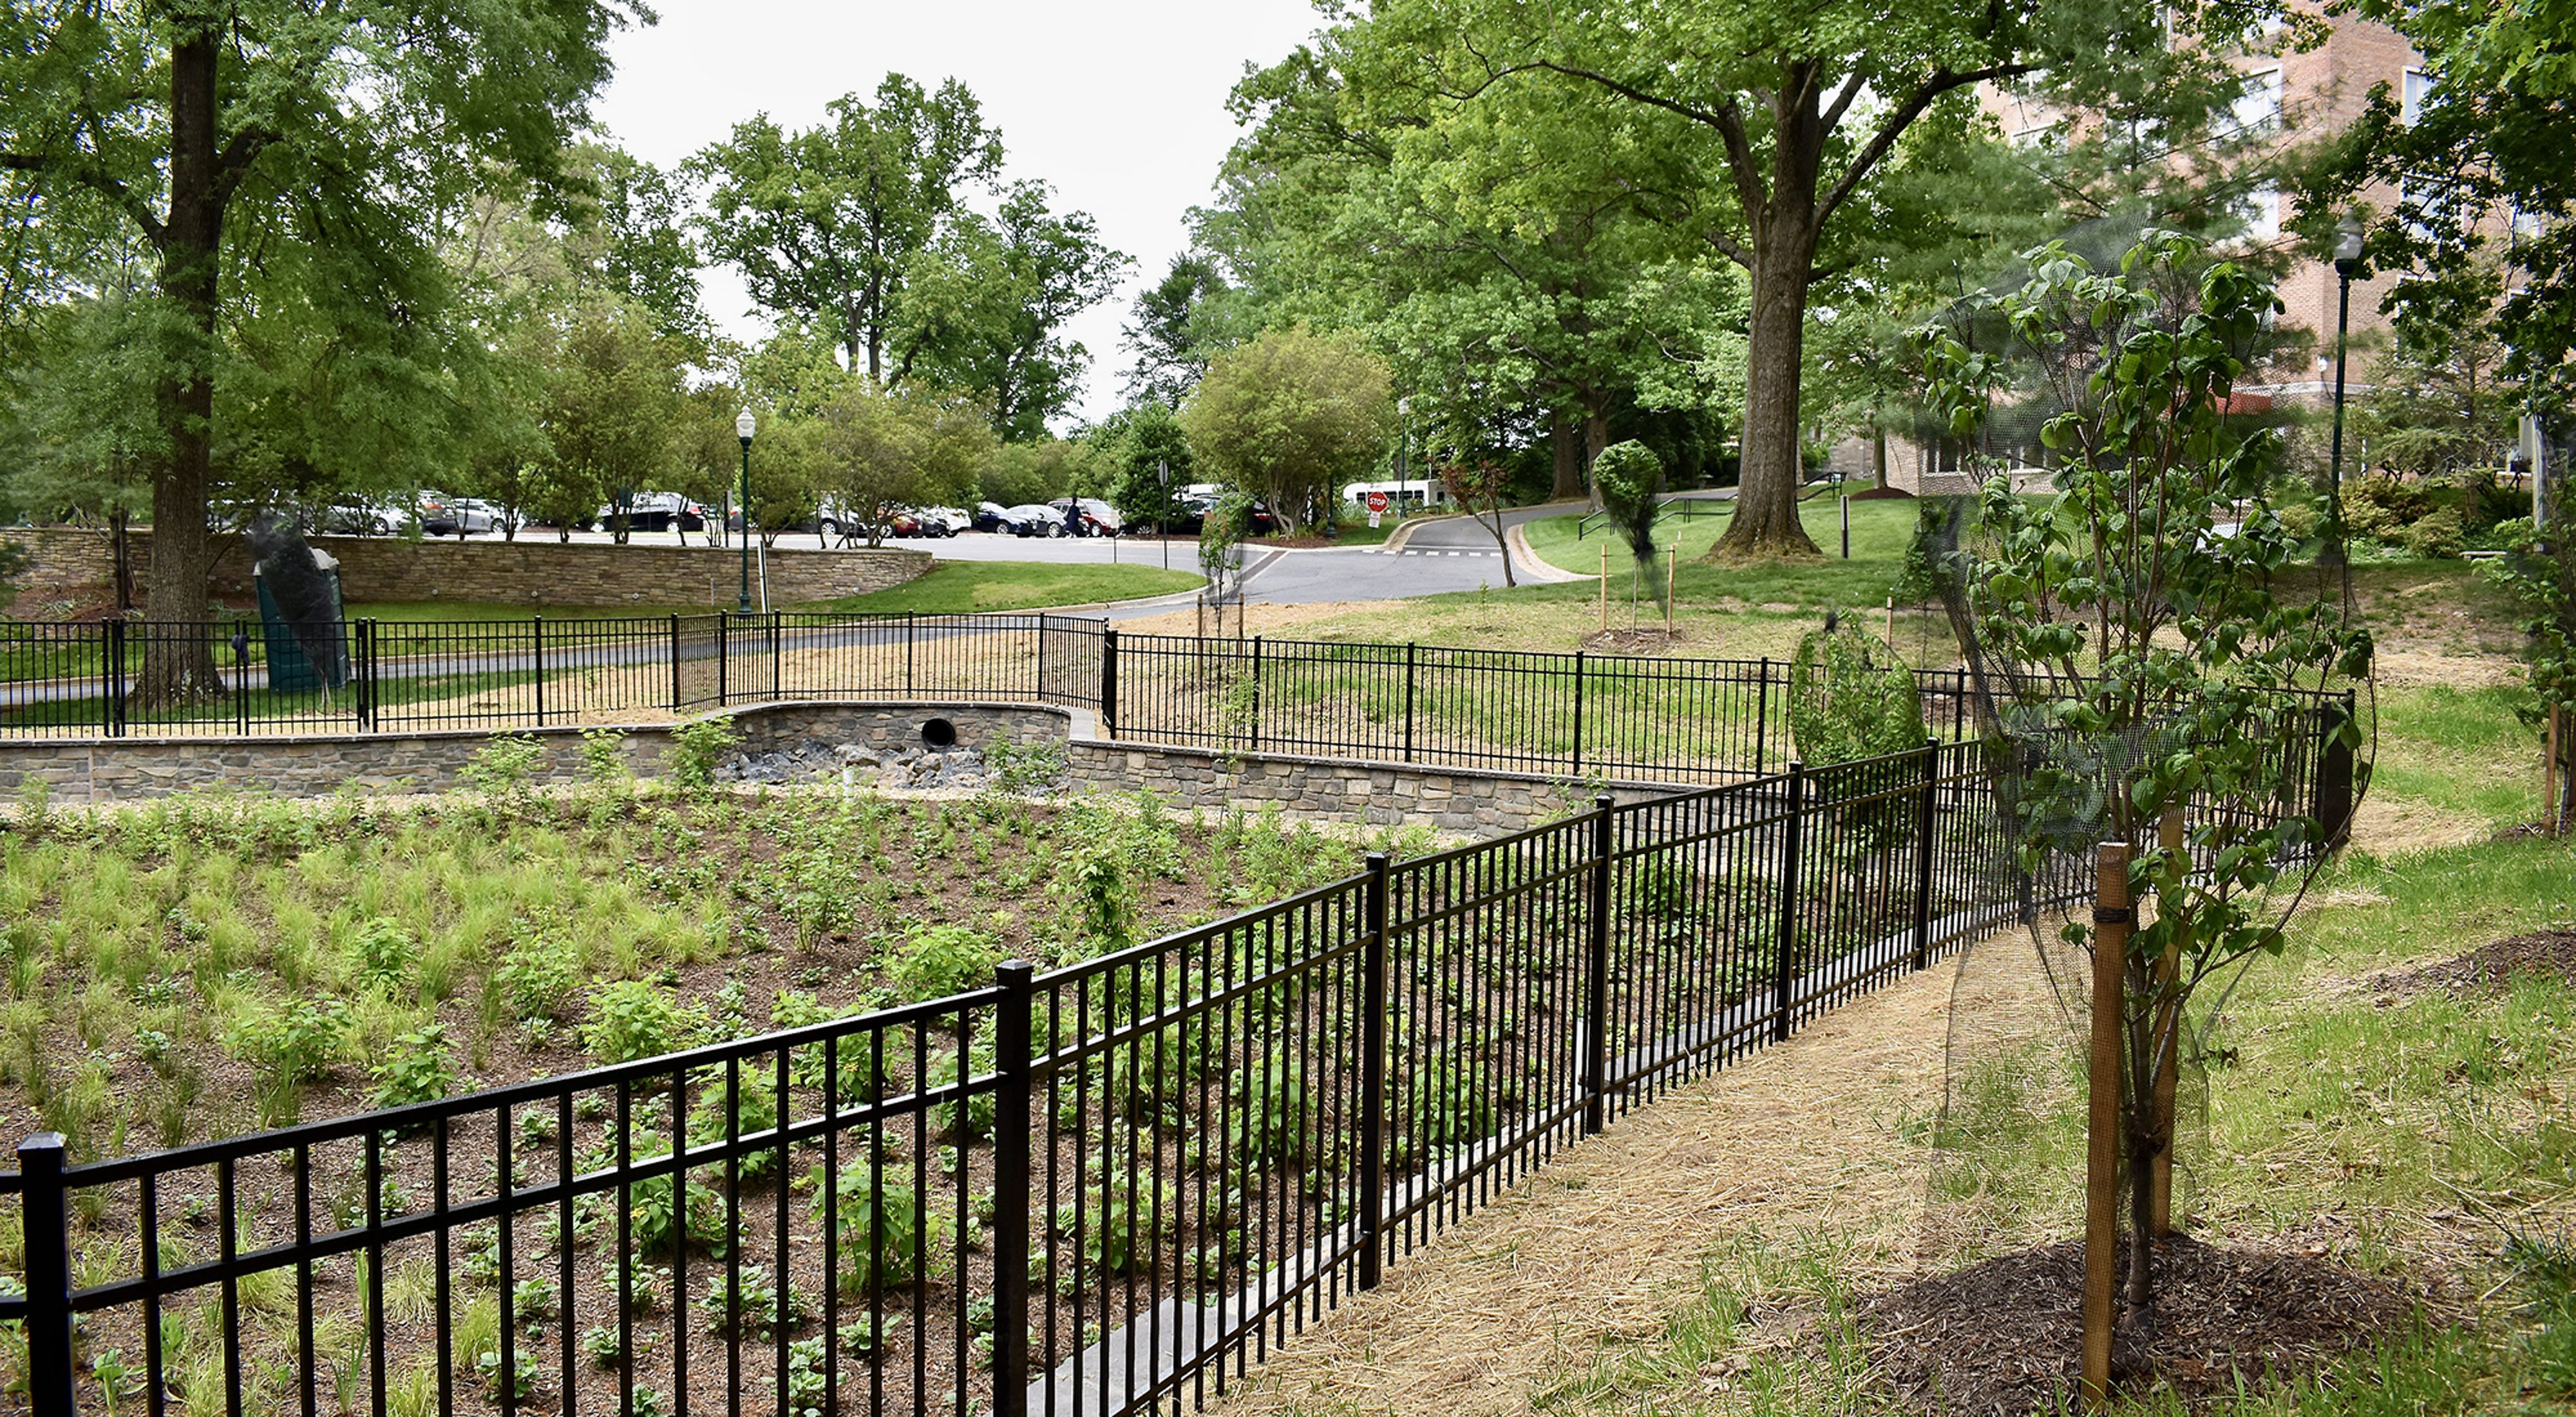 A newly planted rain garden sits at the bottom of a low rise beneath a parking lot. A black iron fence surrounds the garden which is planted with native plants and grasses.